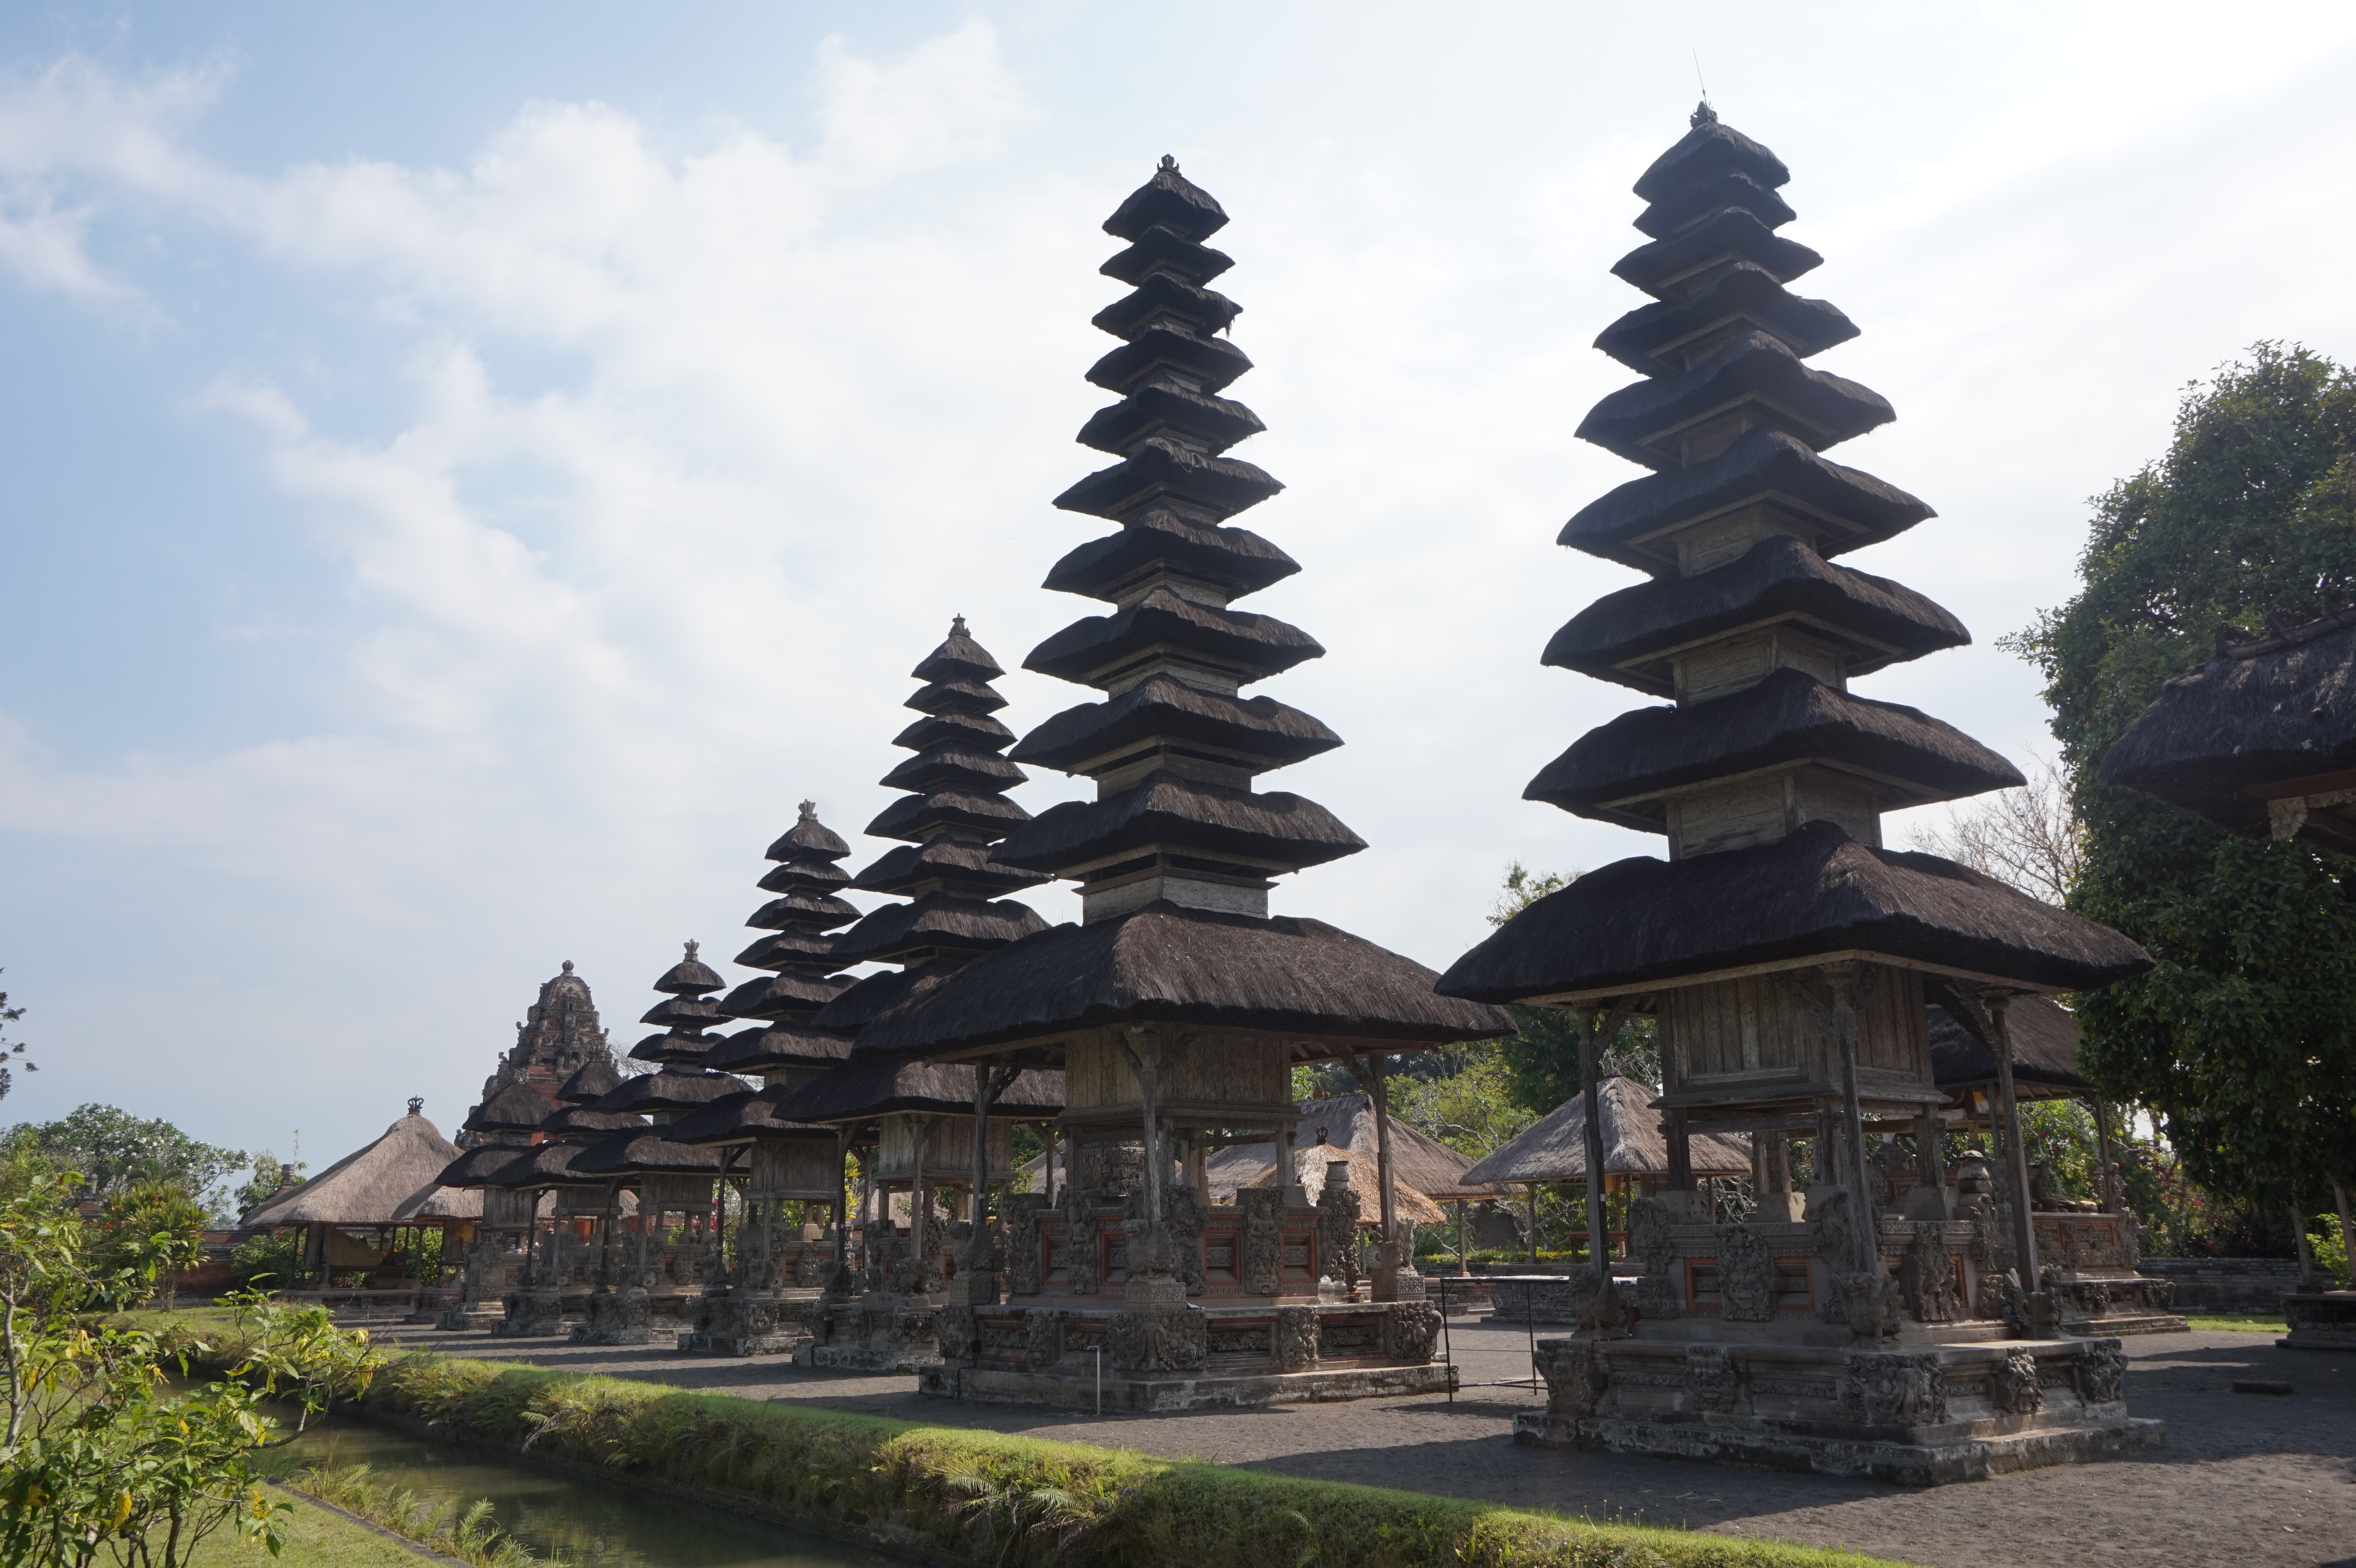 The Many Faces of Sustainable Tourism – My Week in Bali